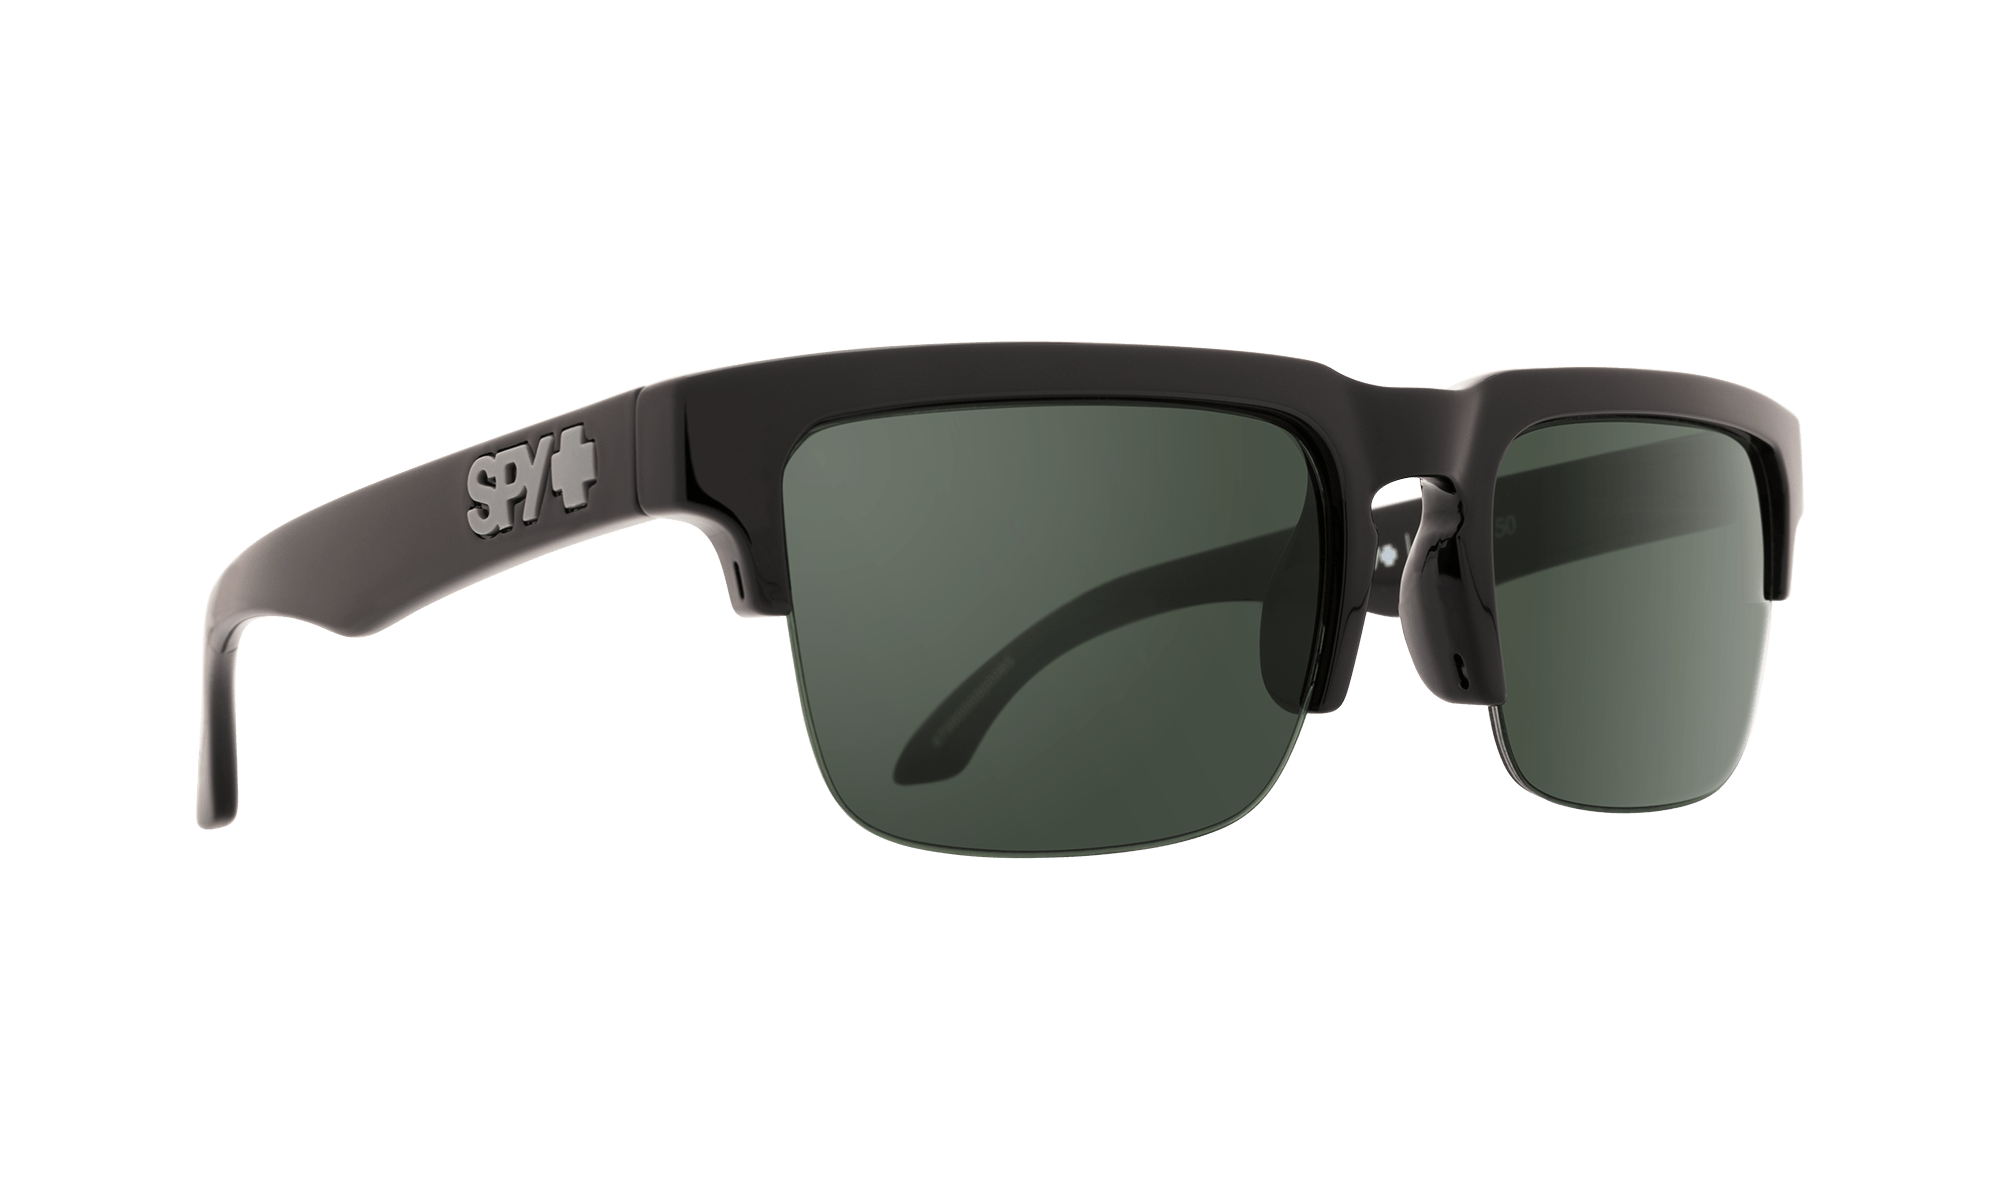 SPY Helm 5050  Sunglasses  HD Plus Gray Green  56-20-140